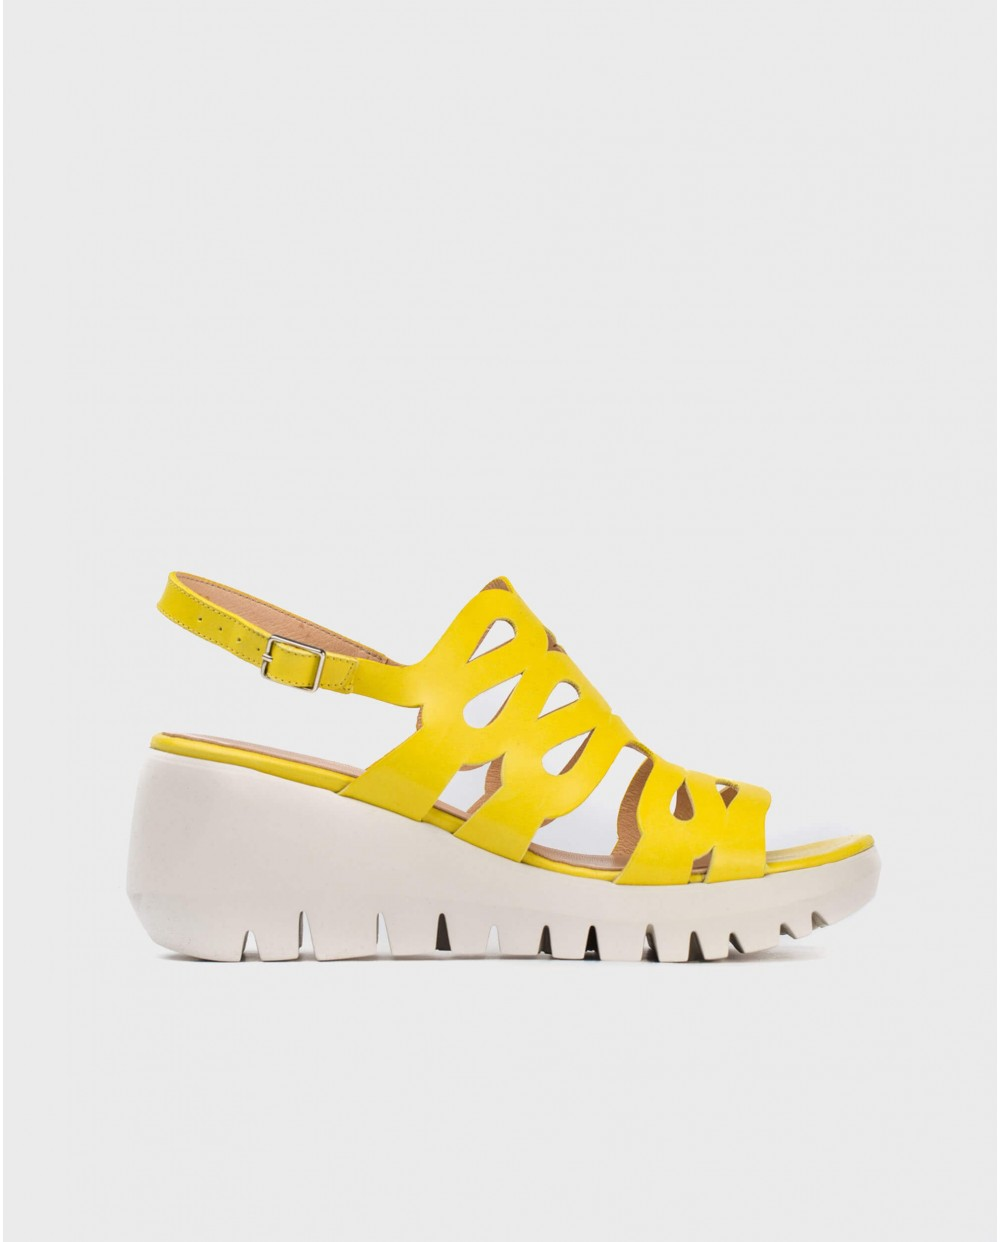 Wonders-Sandals-Sandal with wave straps